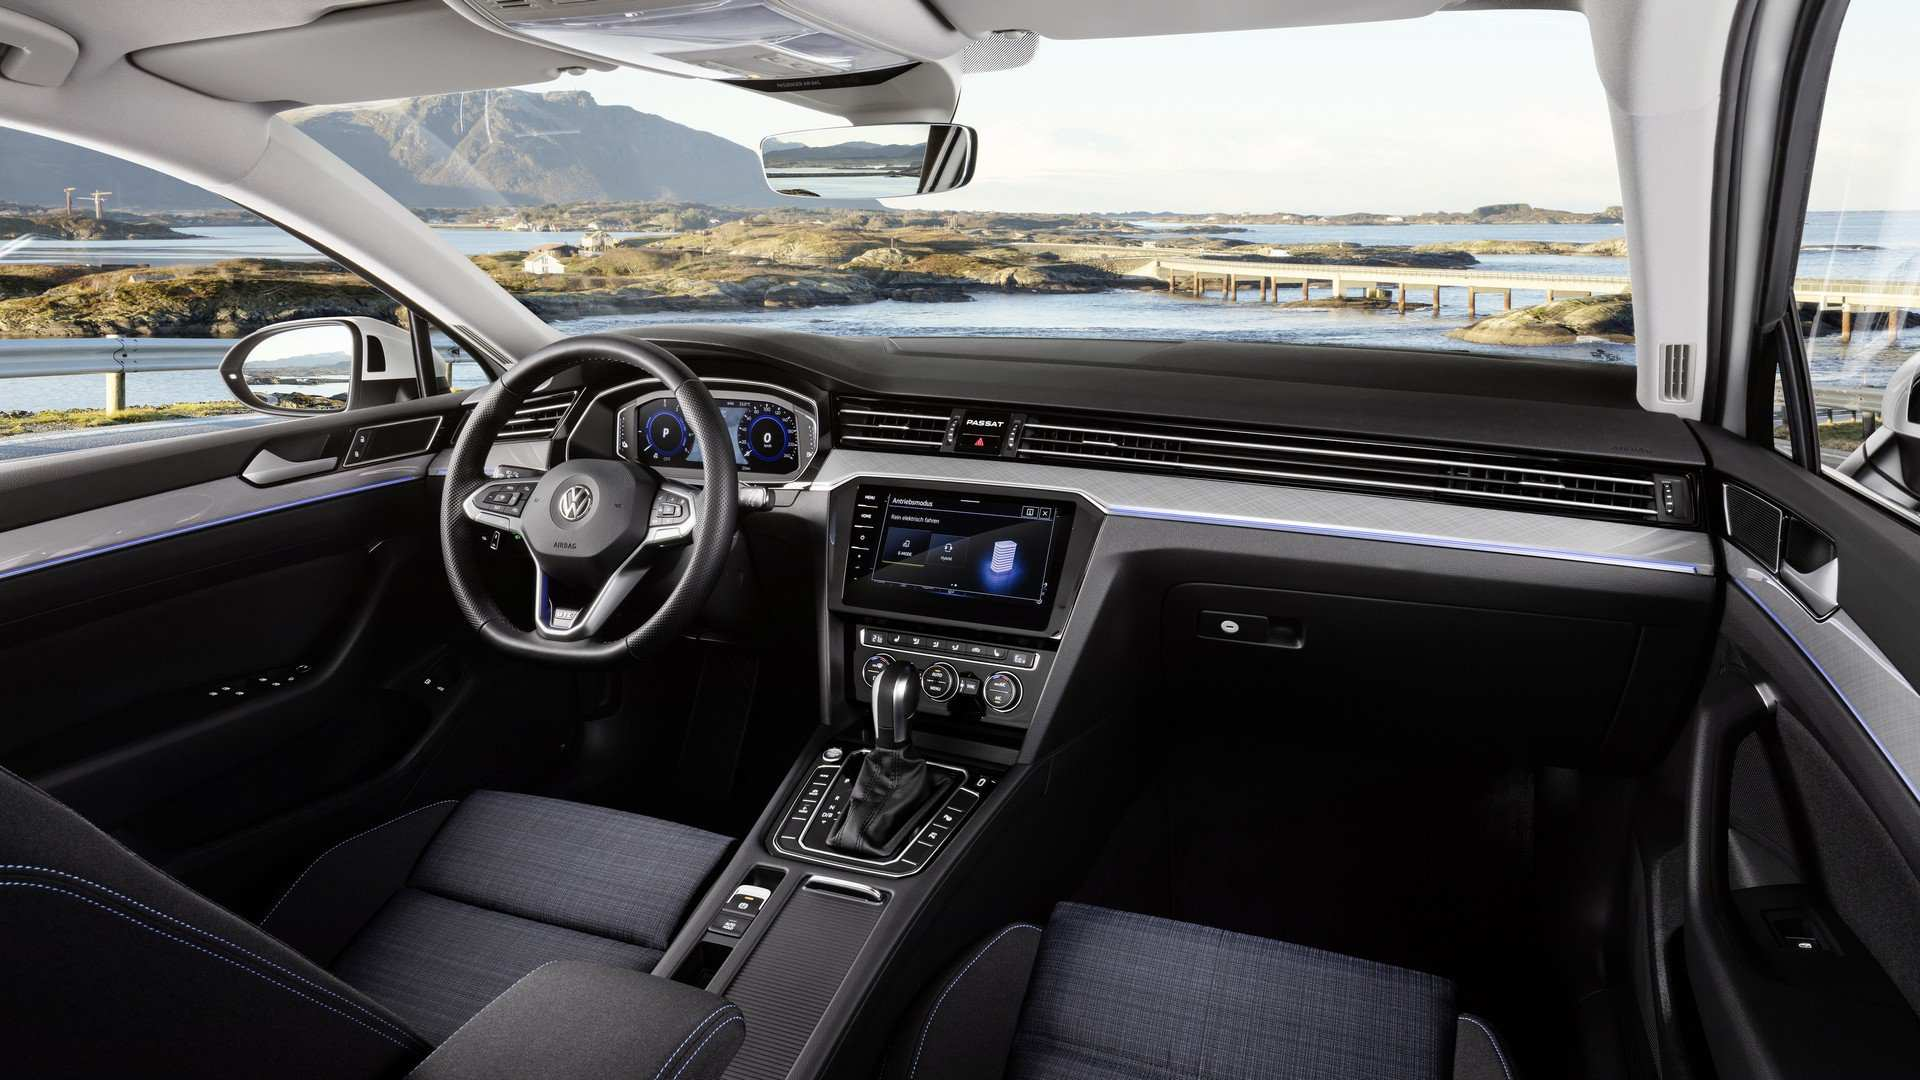 52 The 2020 Volkswagen Passat Interior Prices